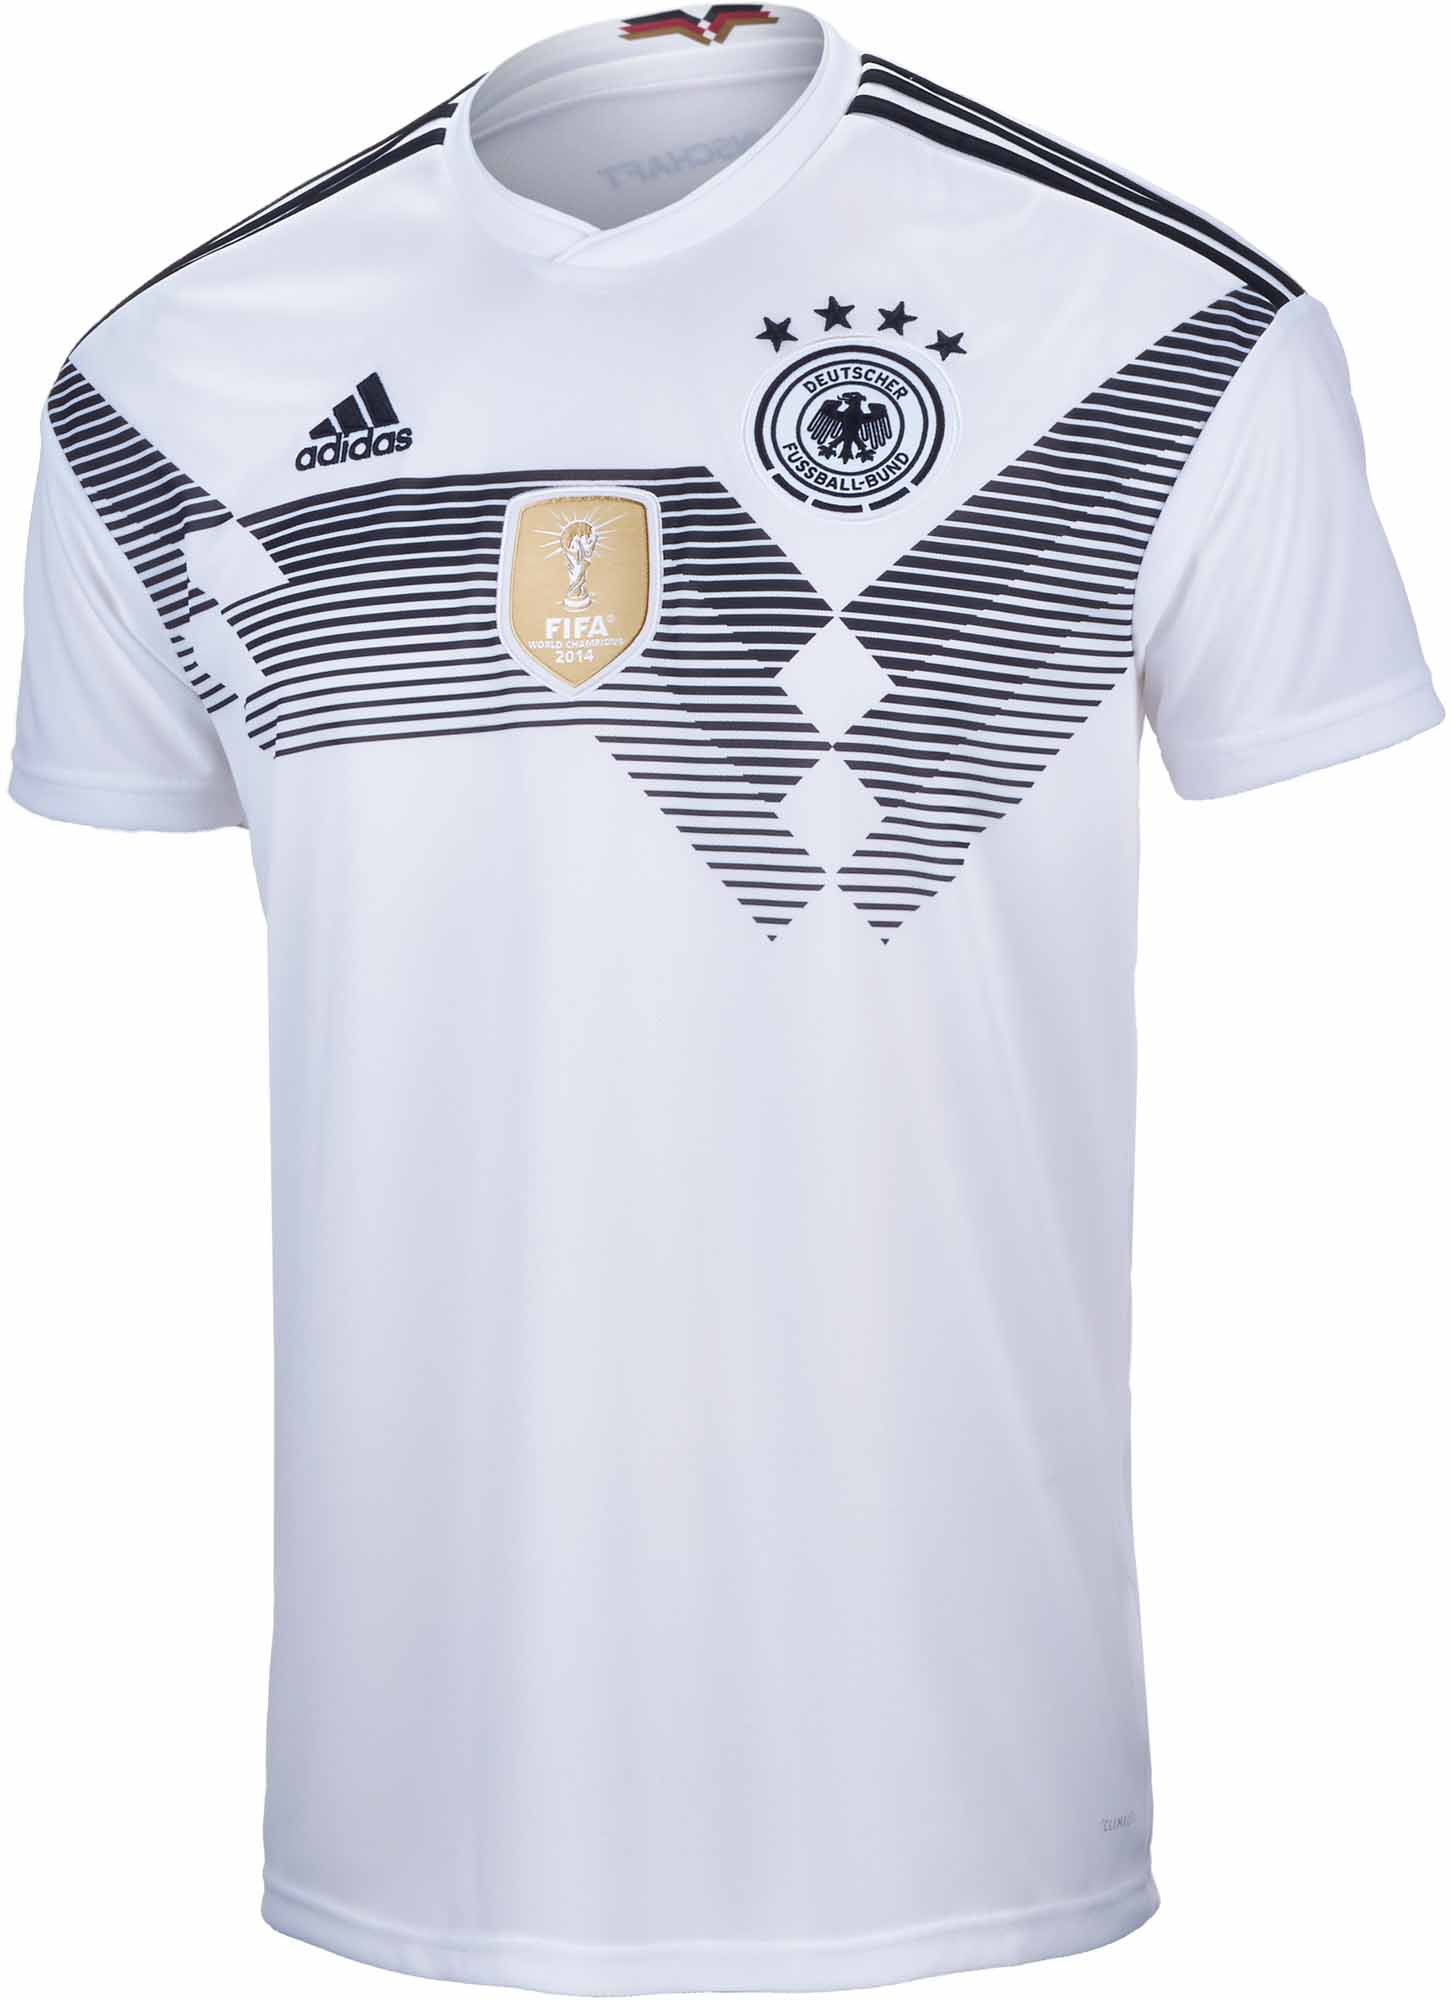 081fb3598 adidas Kids Germany Home Jersey 2018-19 - SoccerPro.com